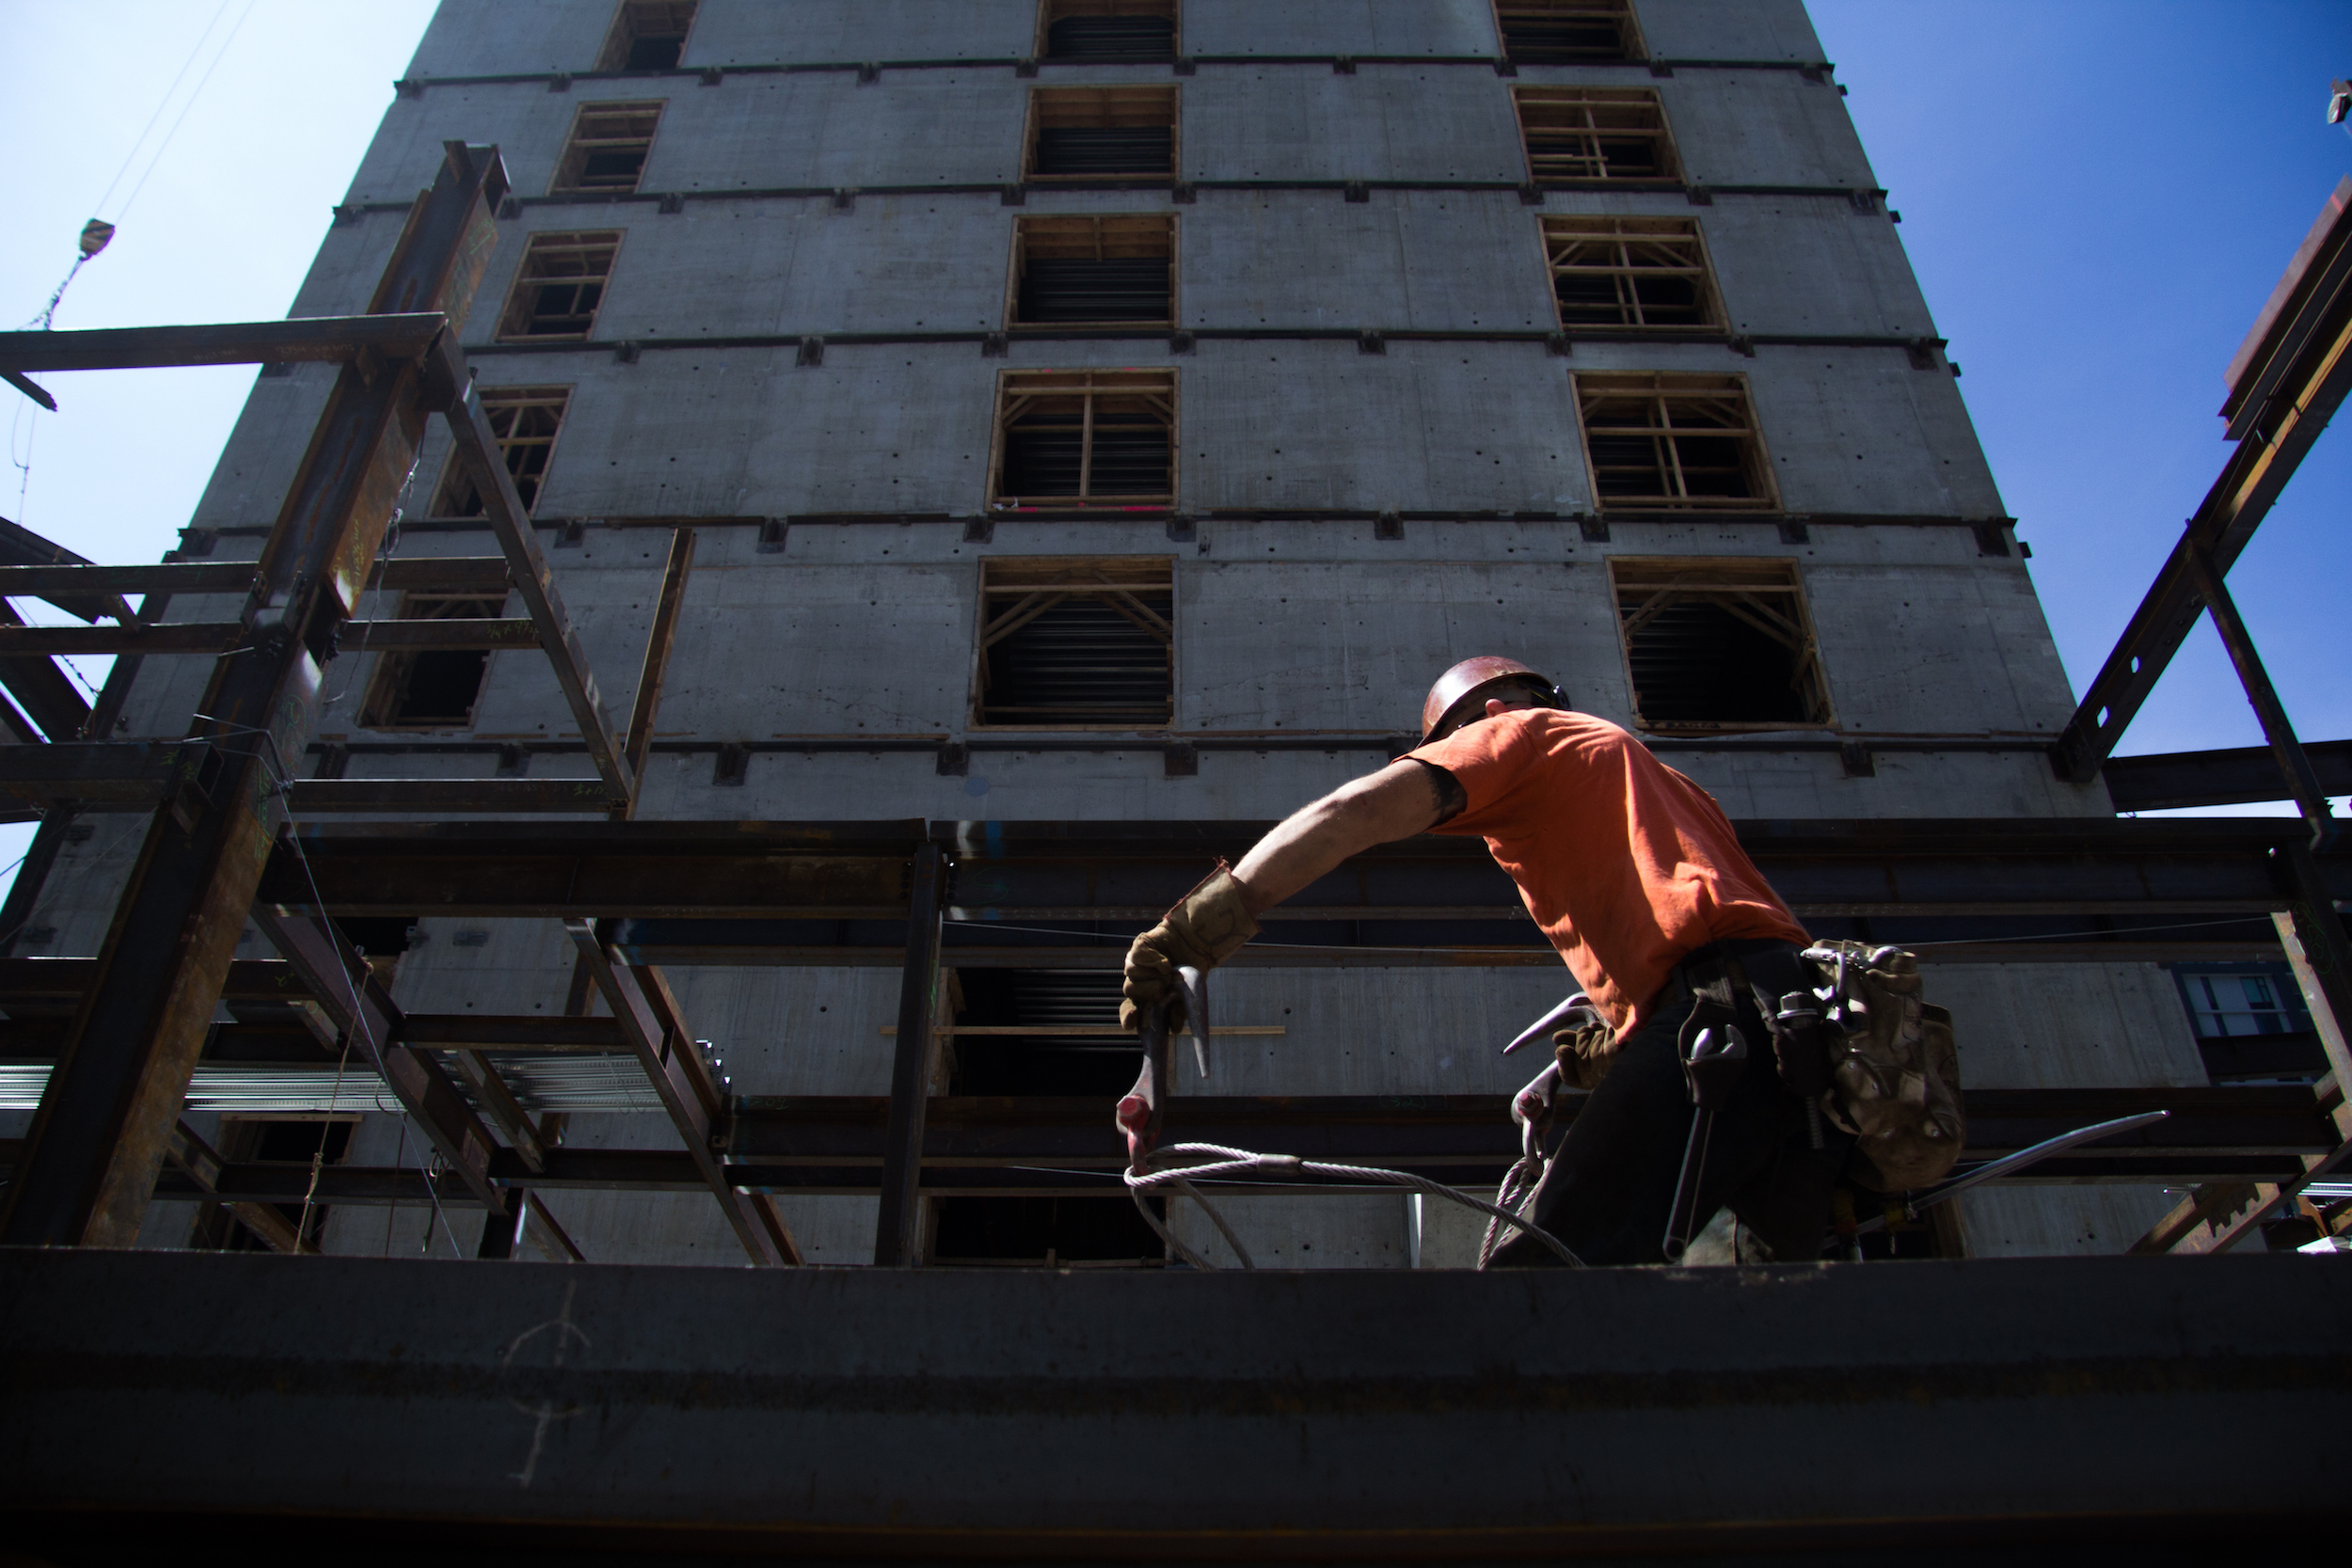 Seattle's booming, but construction workers fear a bust